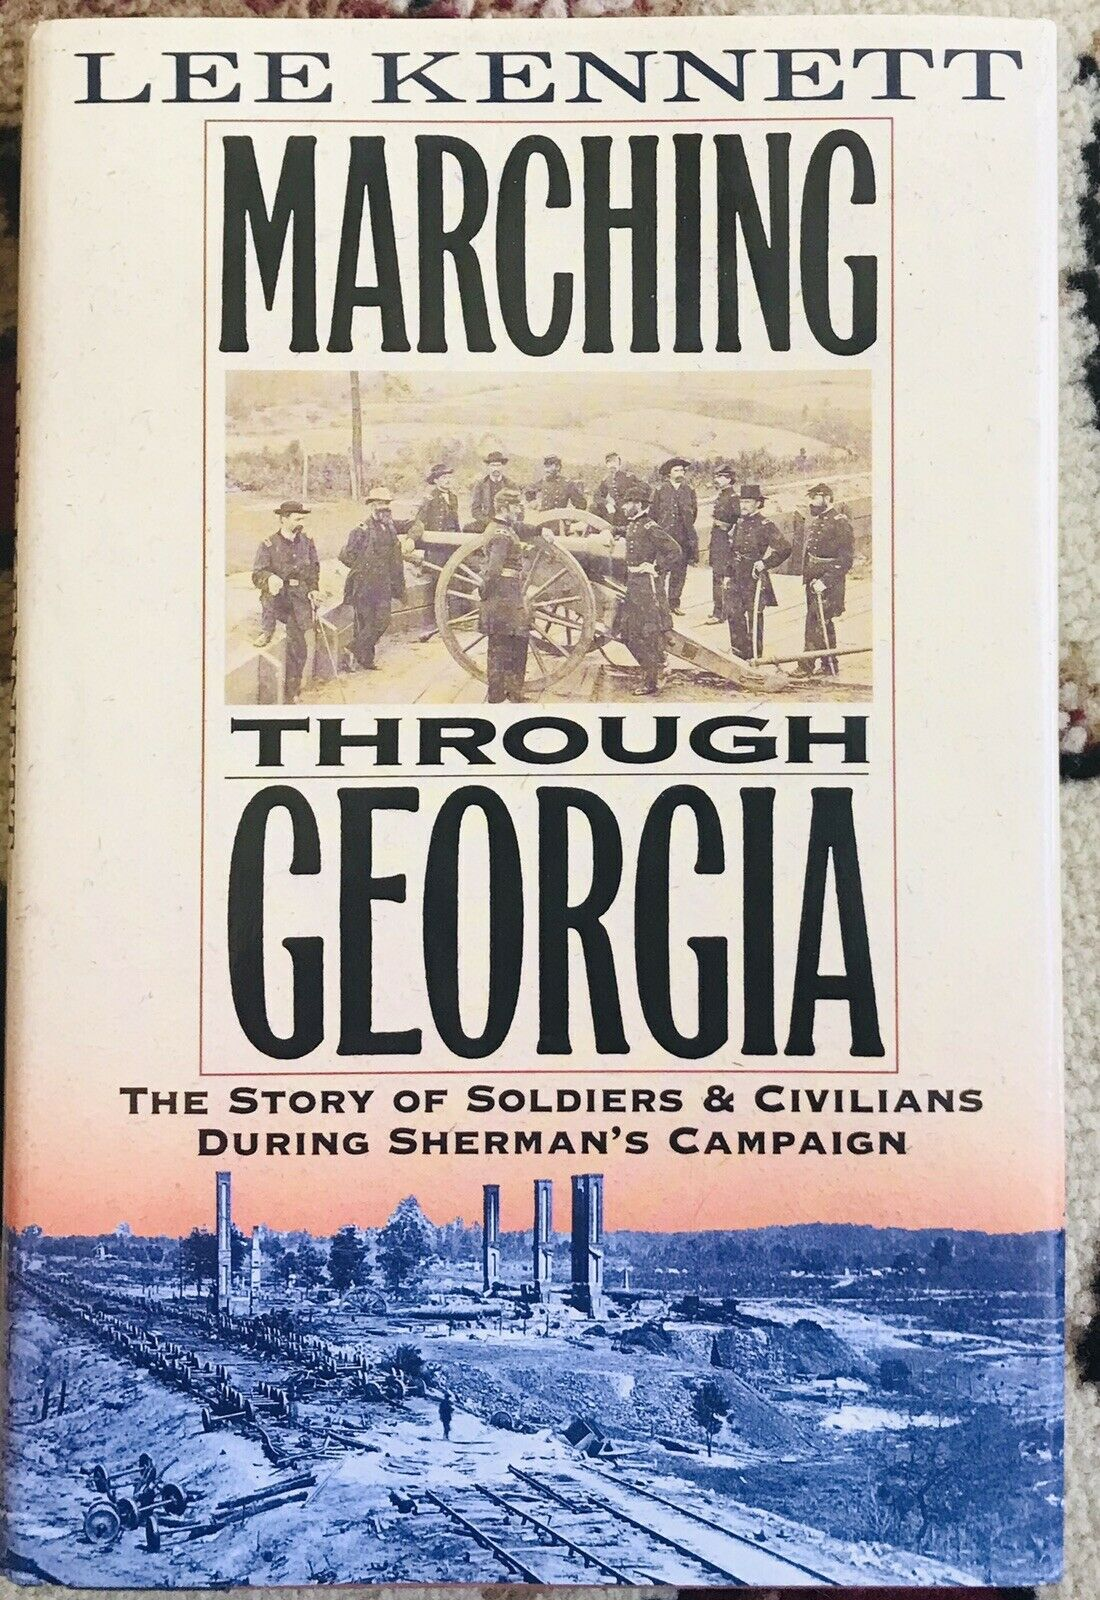 FIRST EDITION MARCHING THROUGH GEORGIA SHERMAN'S CAMPAIGN CIVIL WAR |